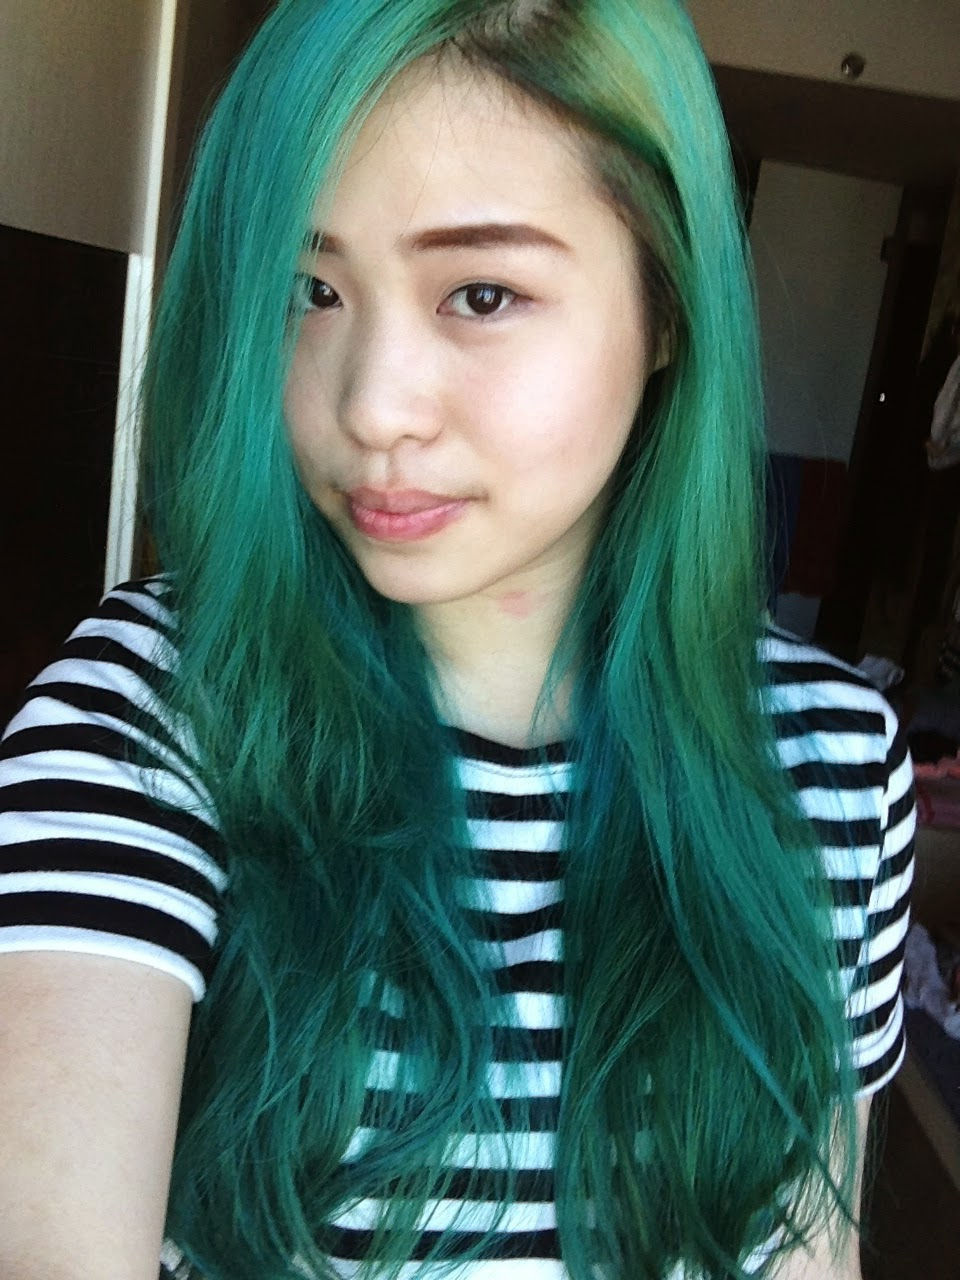 Conosciuto Ivy's stories: Colourful Hair - Manic panic classic review  RB42